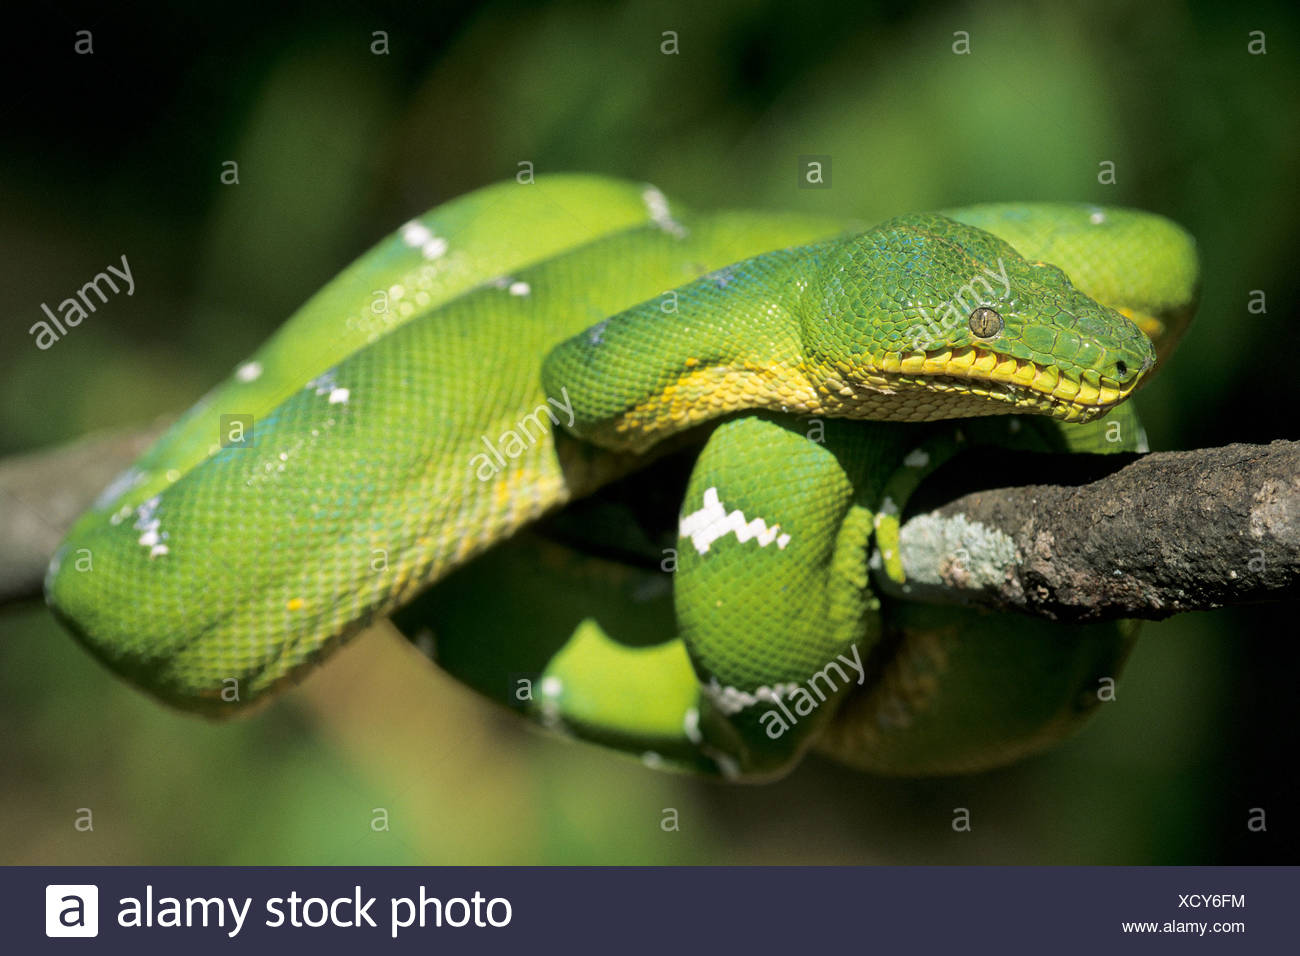 Basking emerald tree boa (Corallus canimus) from the rain forests of tropical Brazil - Stock Image